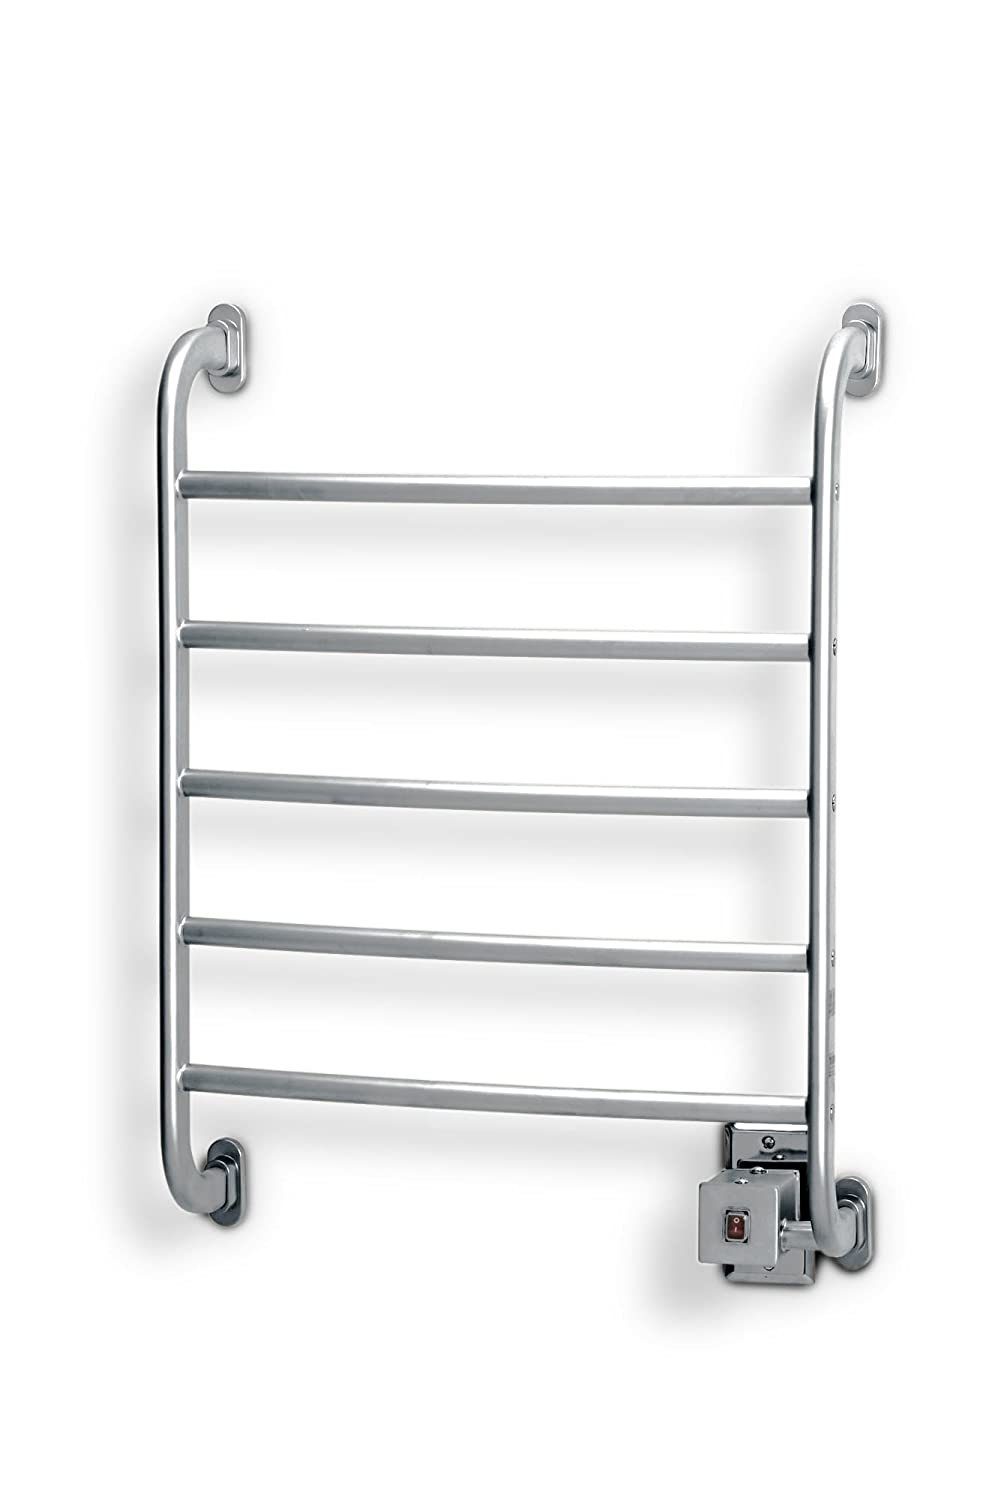 mounted size bearing x holder high and luxury rail wall ideas shelf rack for towel